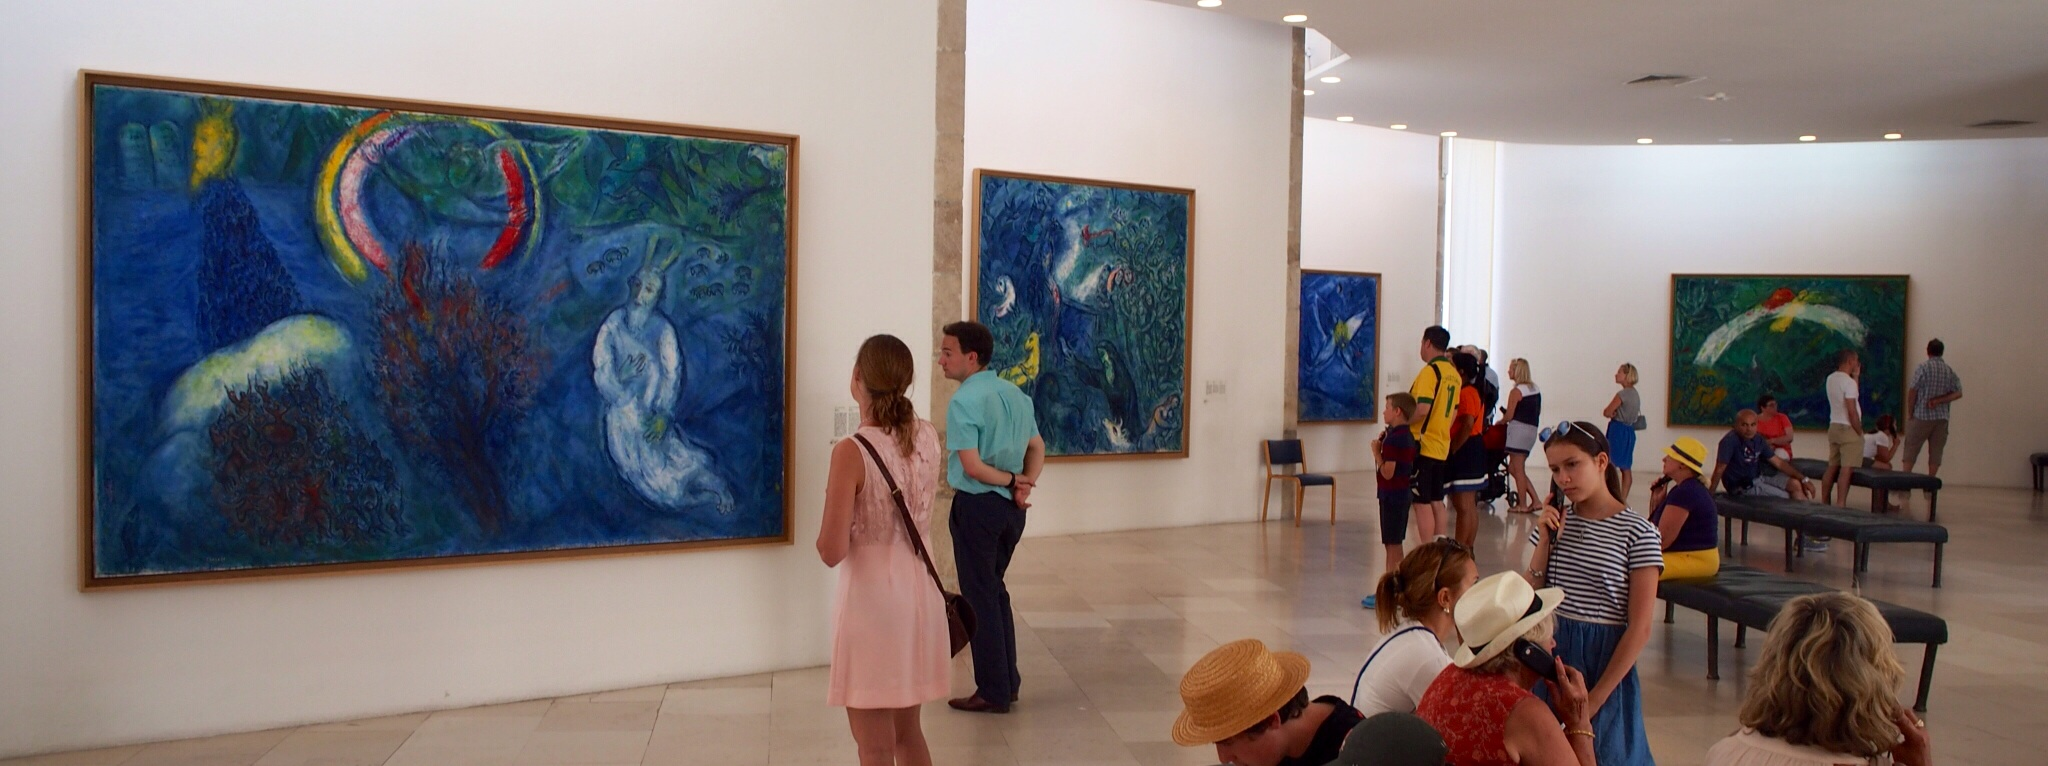 Inside main gallery area Marc Chagall